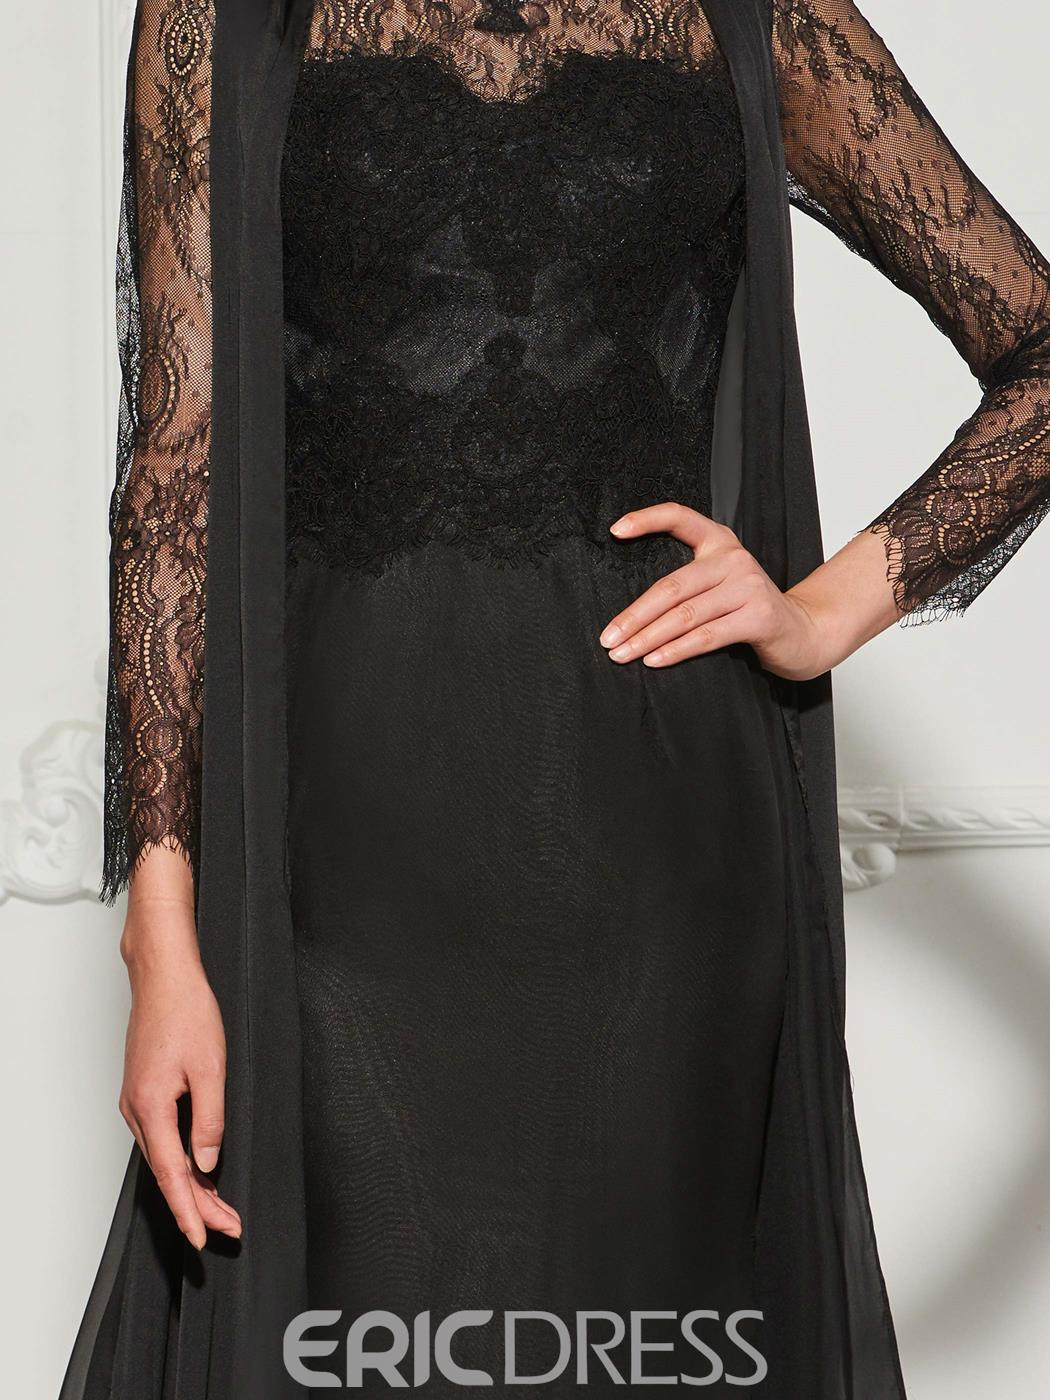 Ericdress Scalloped-Edge Neck Long Sleeve Lace Evening Dress With Watteau Train